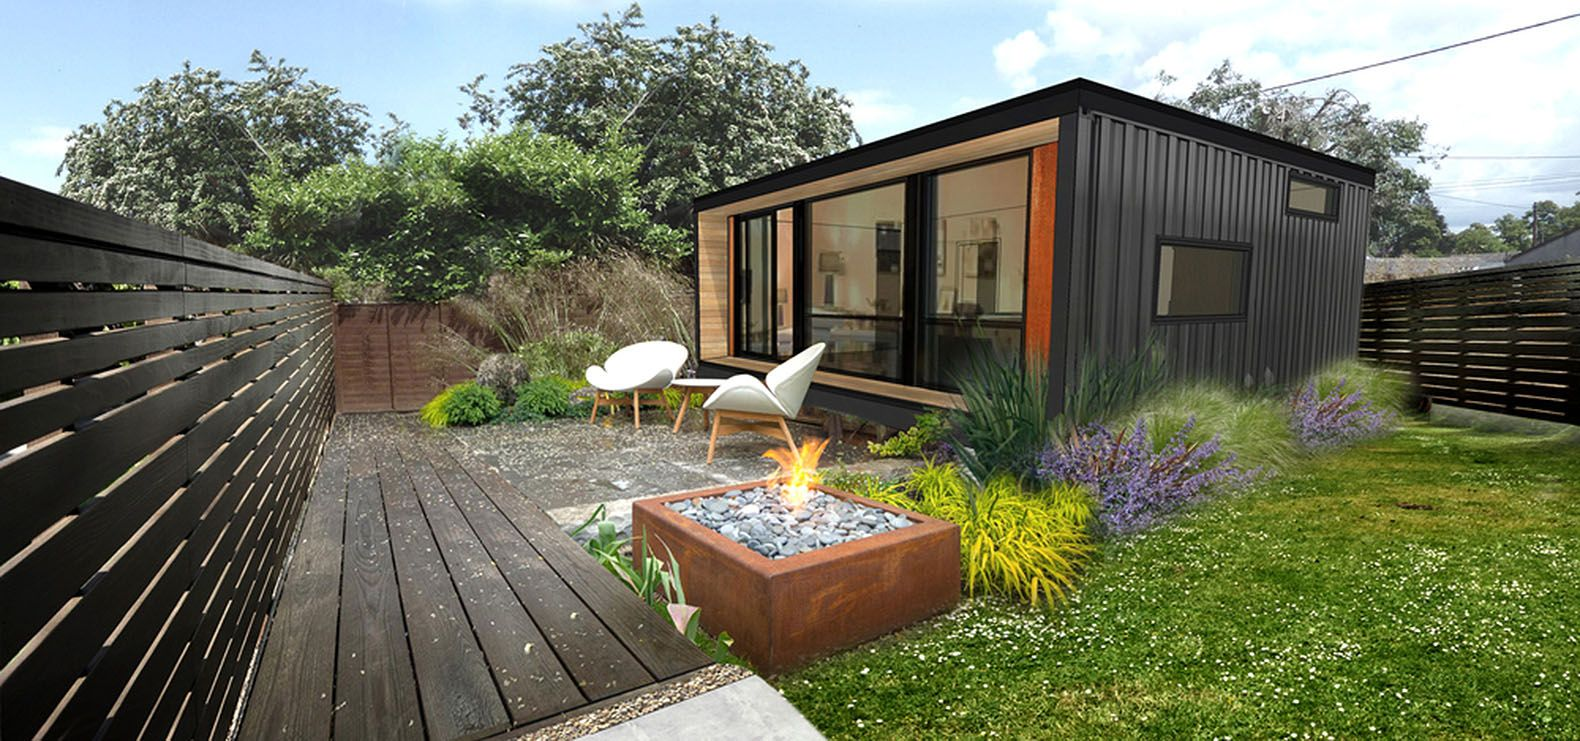 Design Prefab Shipping Container Homes you can order honomobos prefab shipping container homes online online